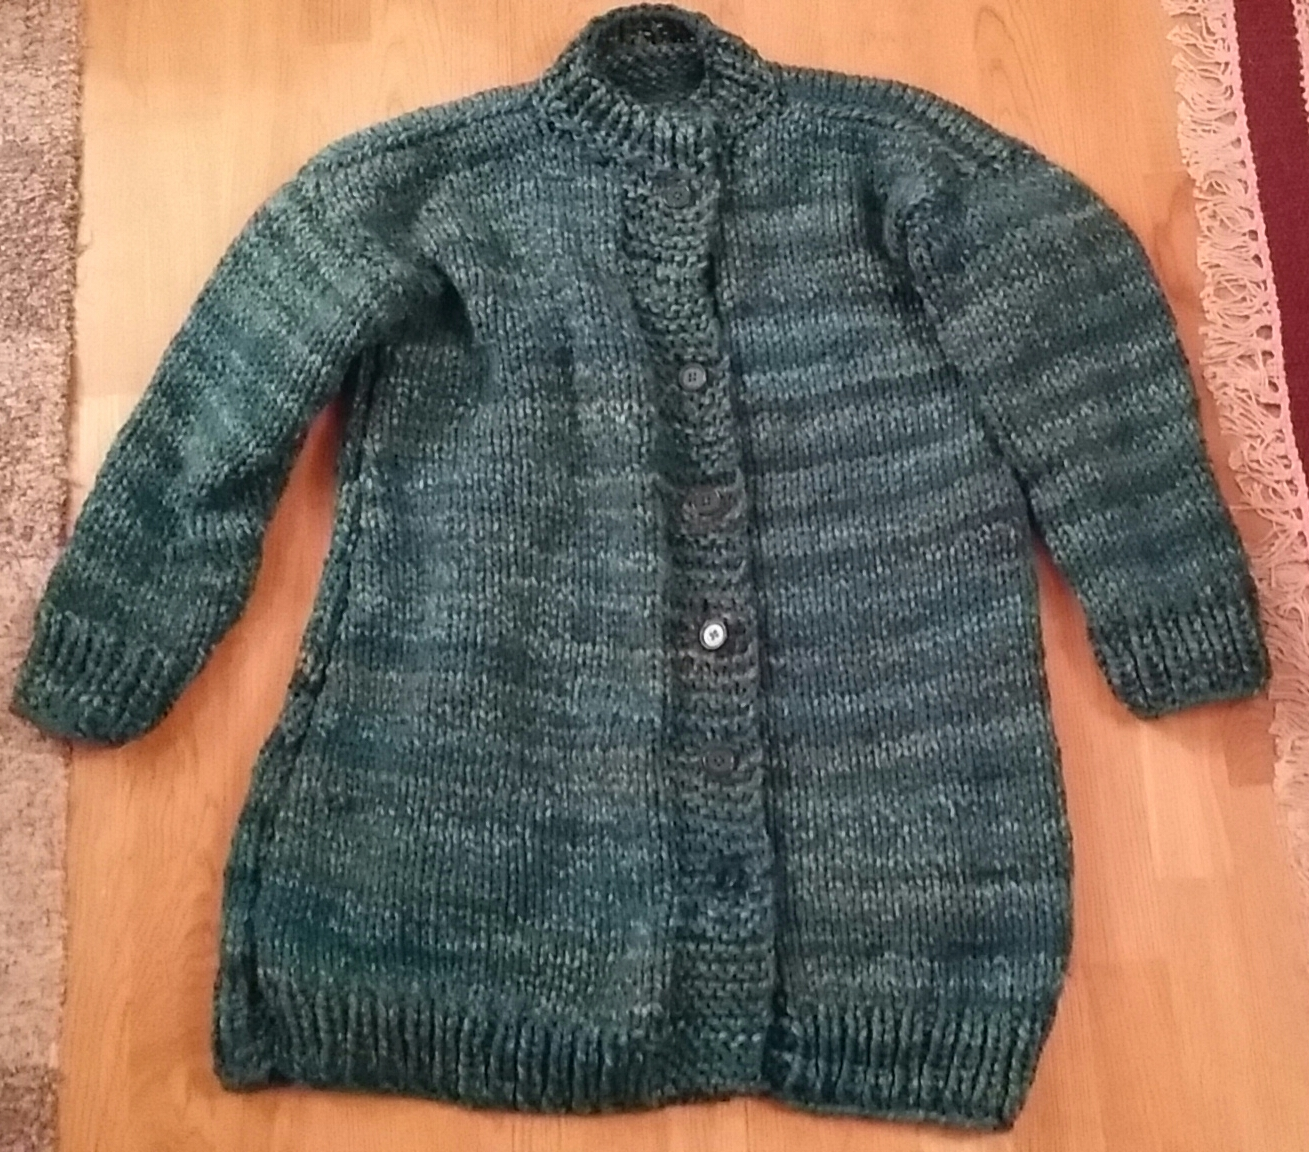 Grön kofta i green sweater superbulky garn yarn